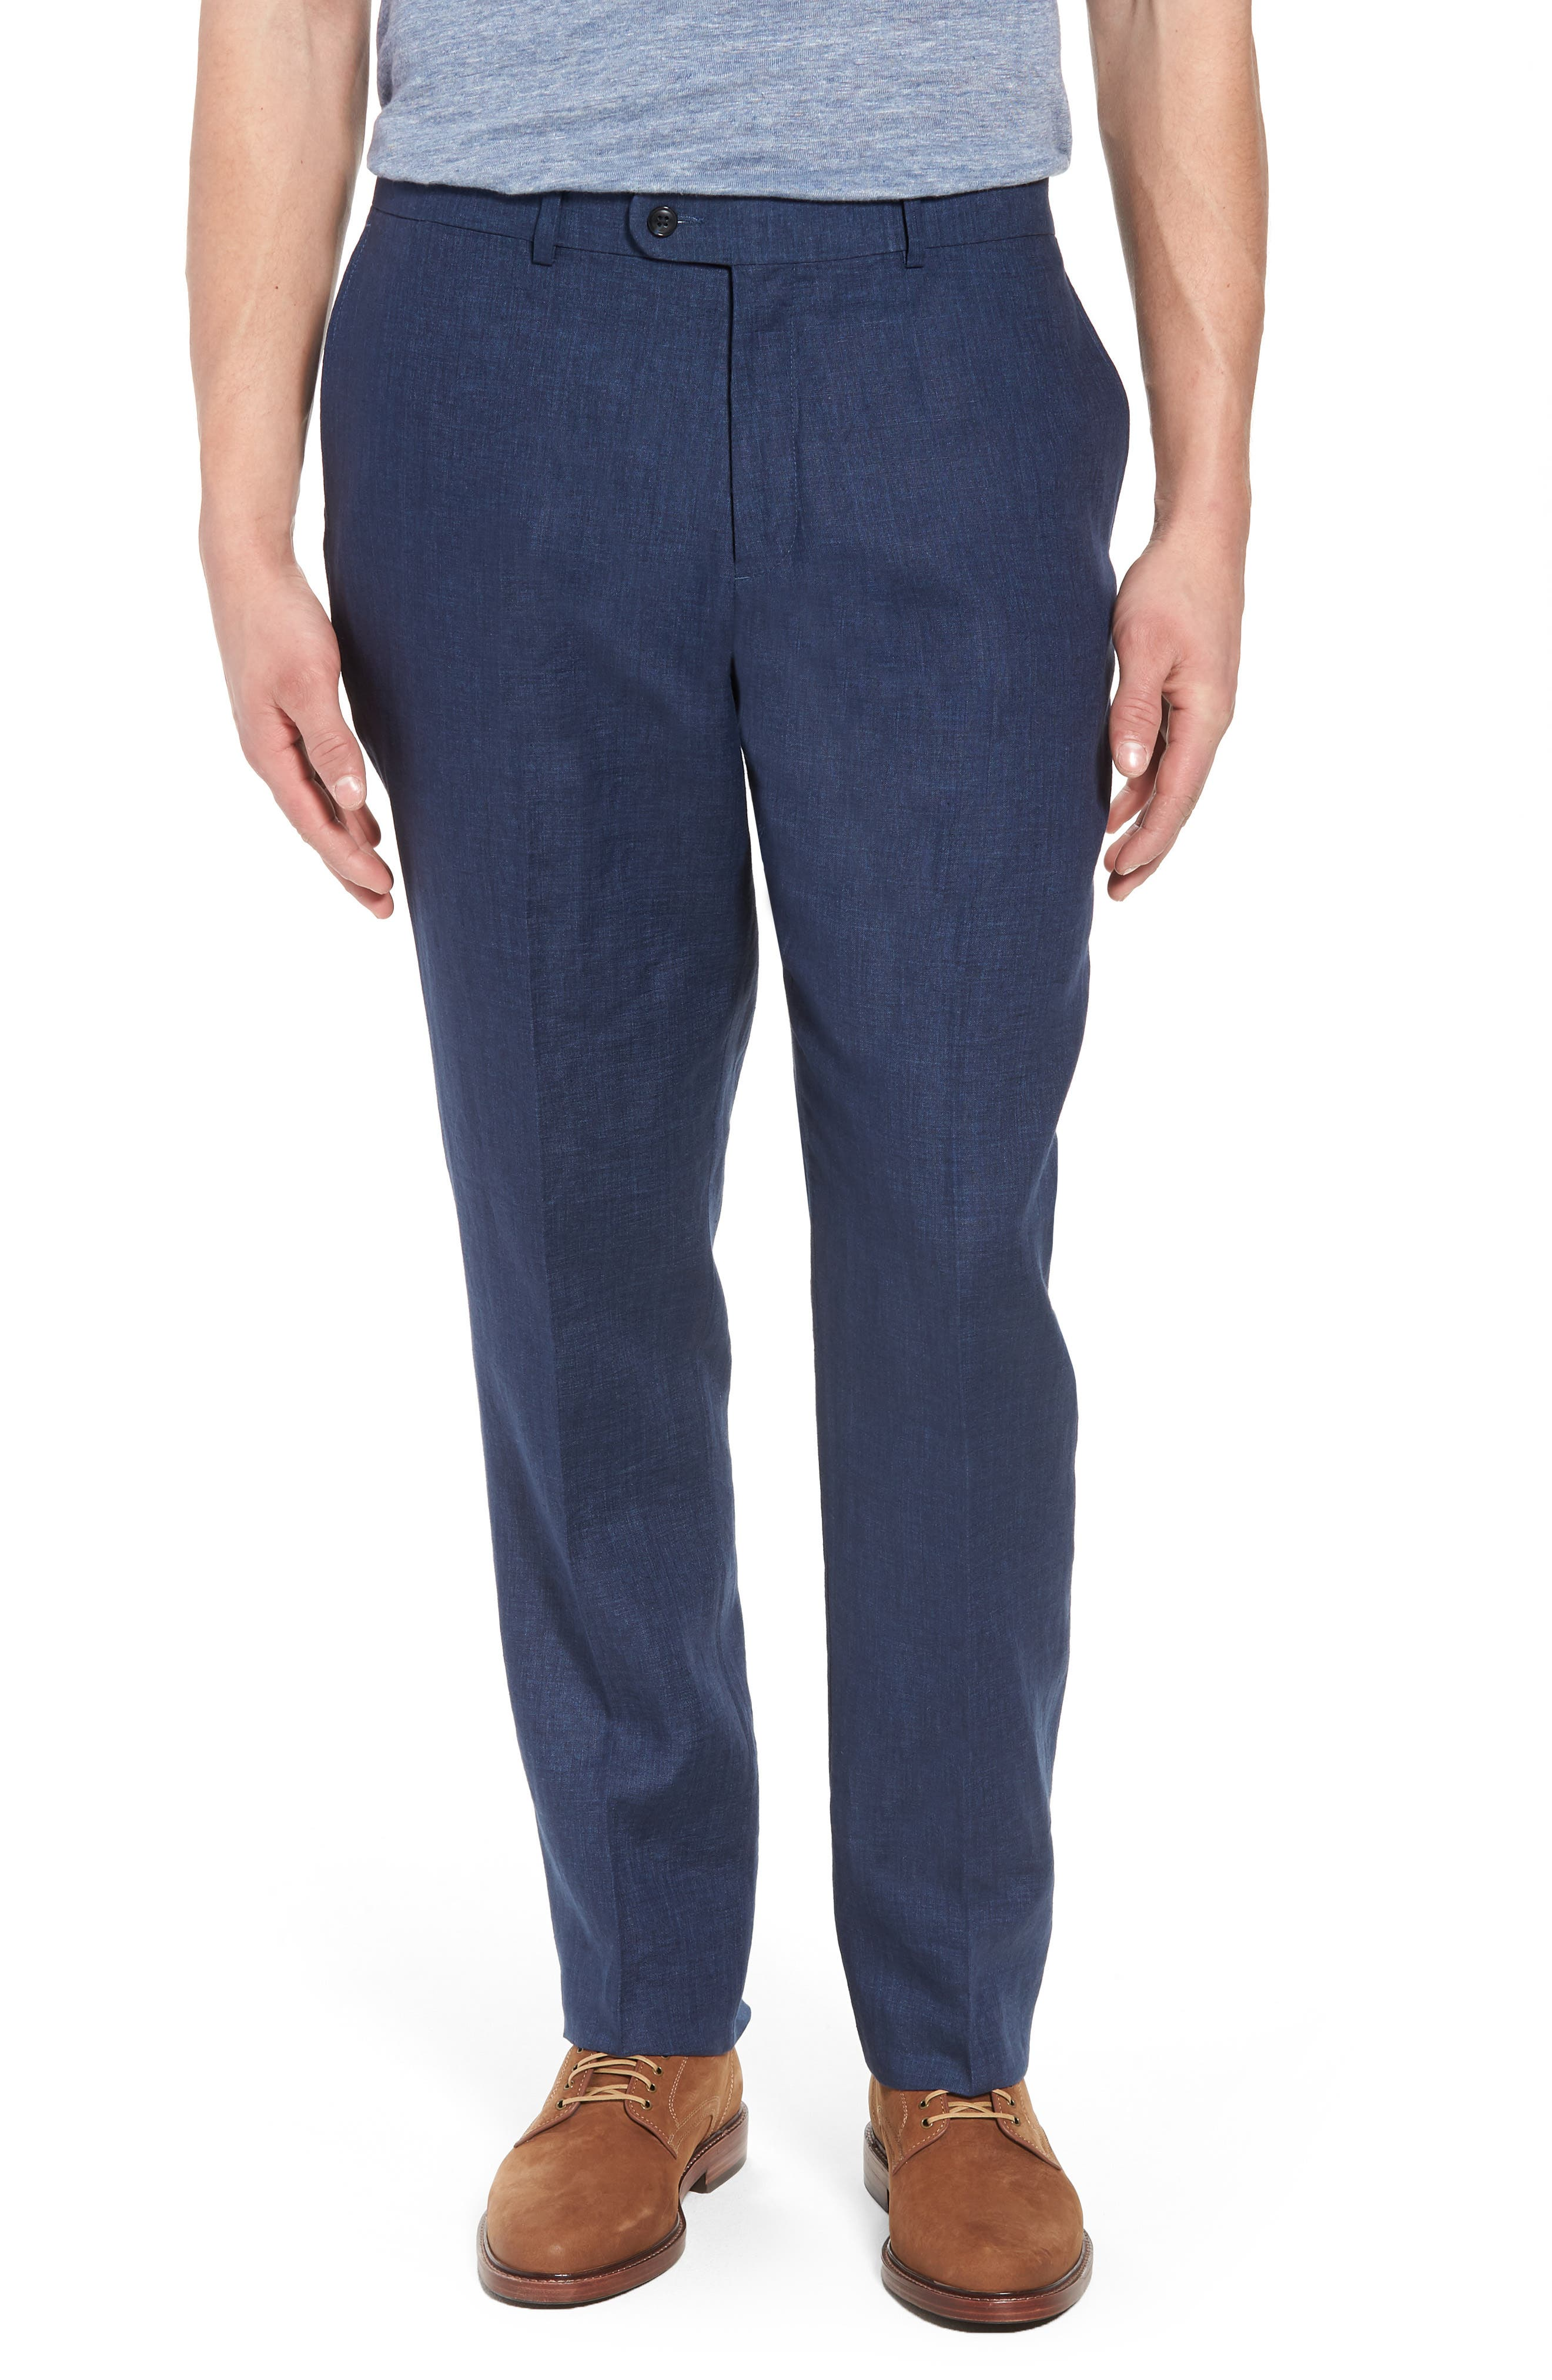 Andrew AIM Flat Front Linen Trousers,                         Main,                         color, Navy